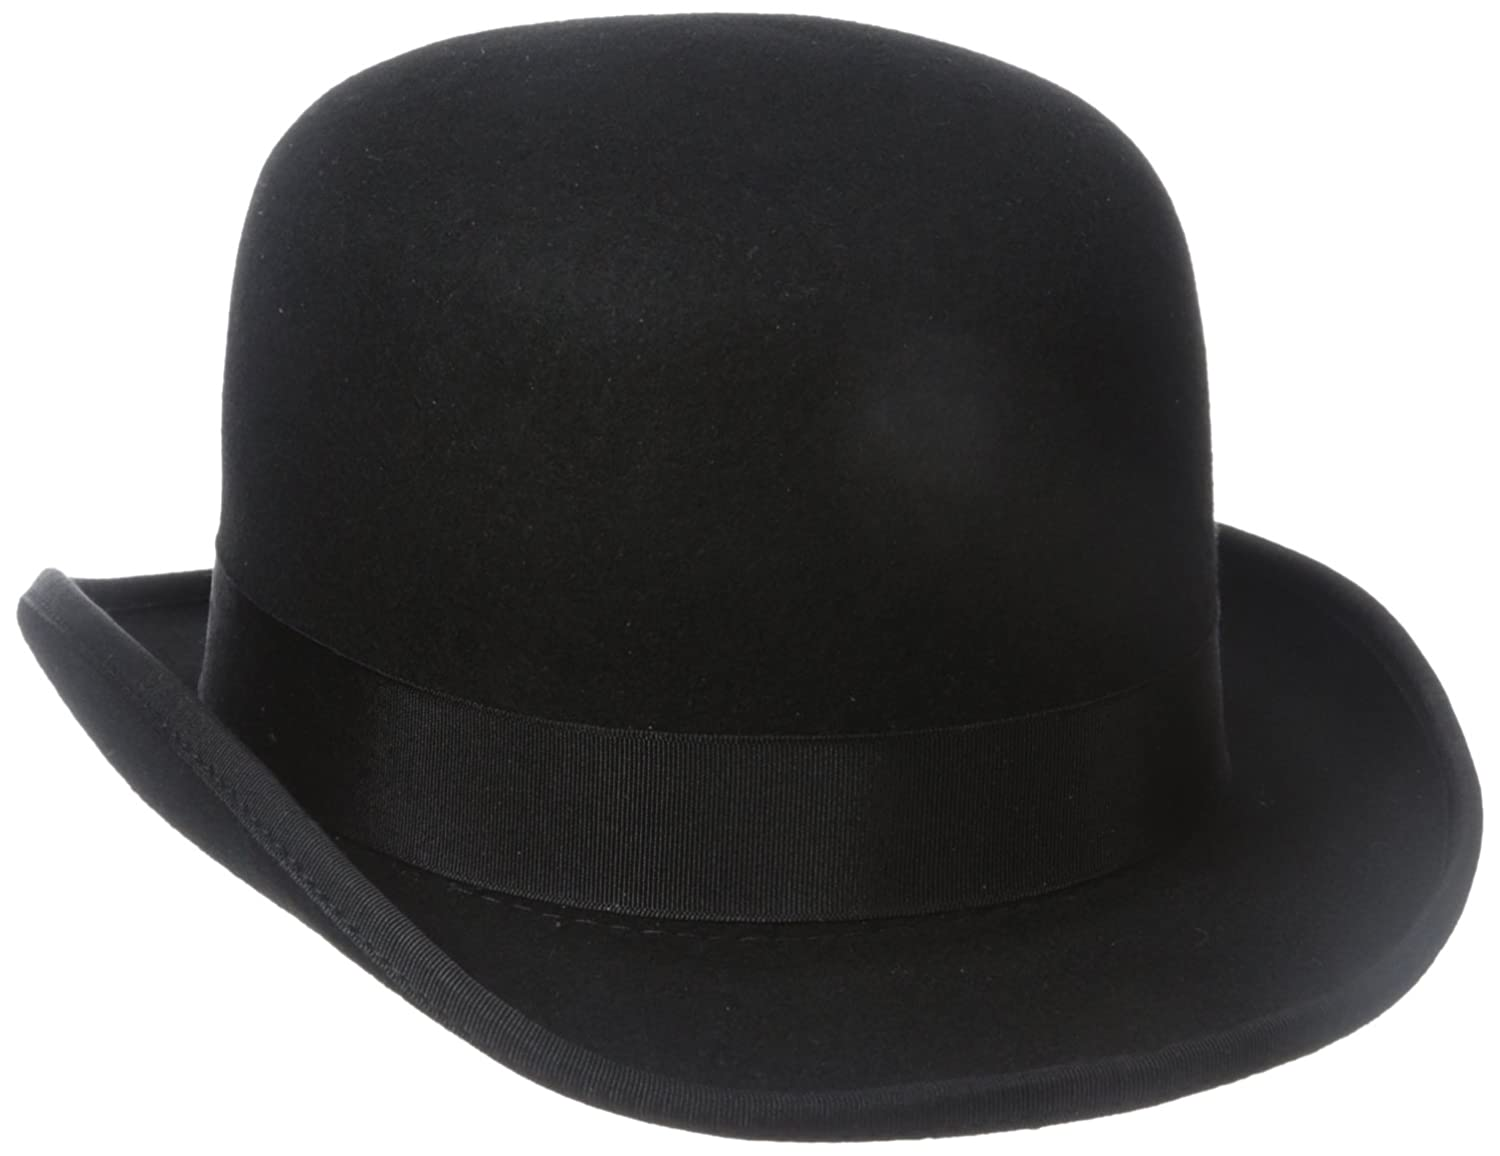 STACY ADAMS Men s Wool Derby Hat at Amazon Men s Clothing store  6ed356e4e07